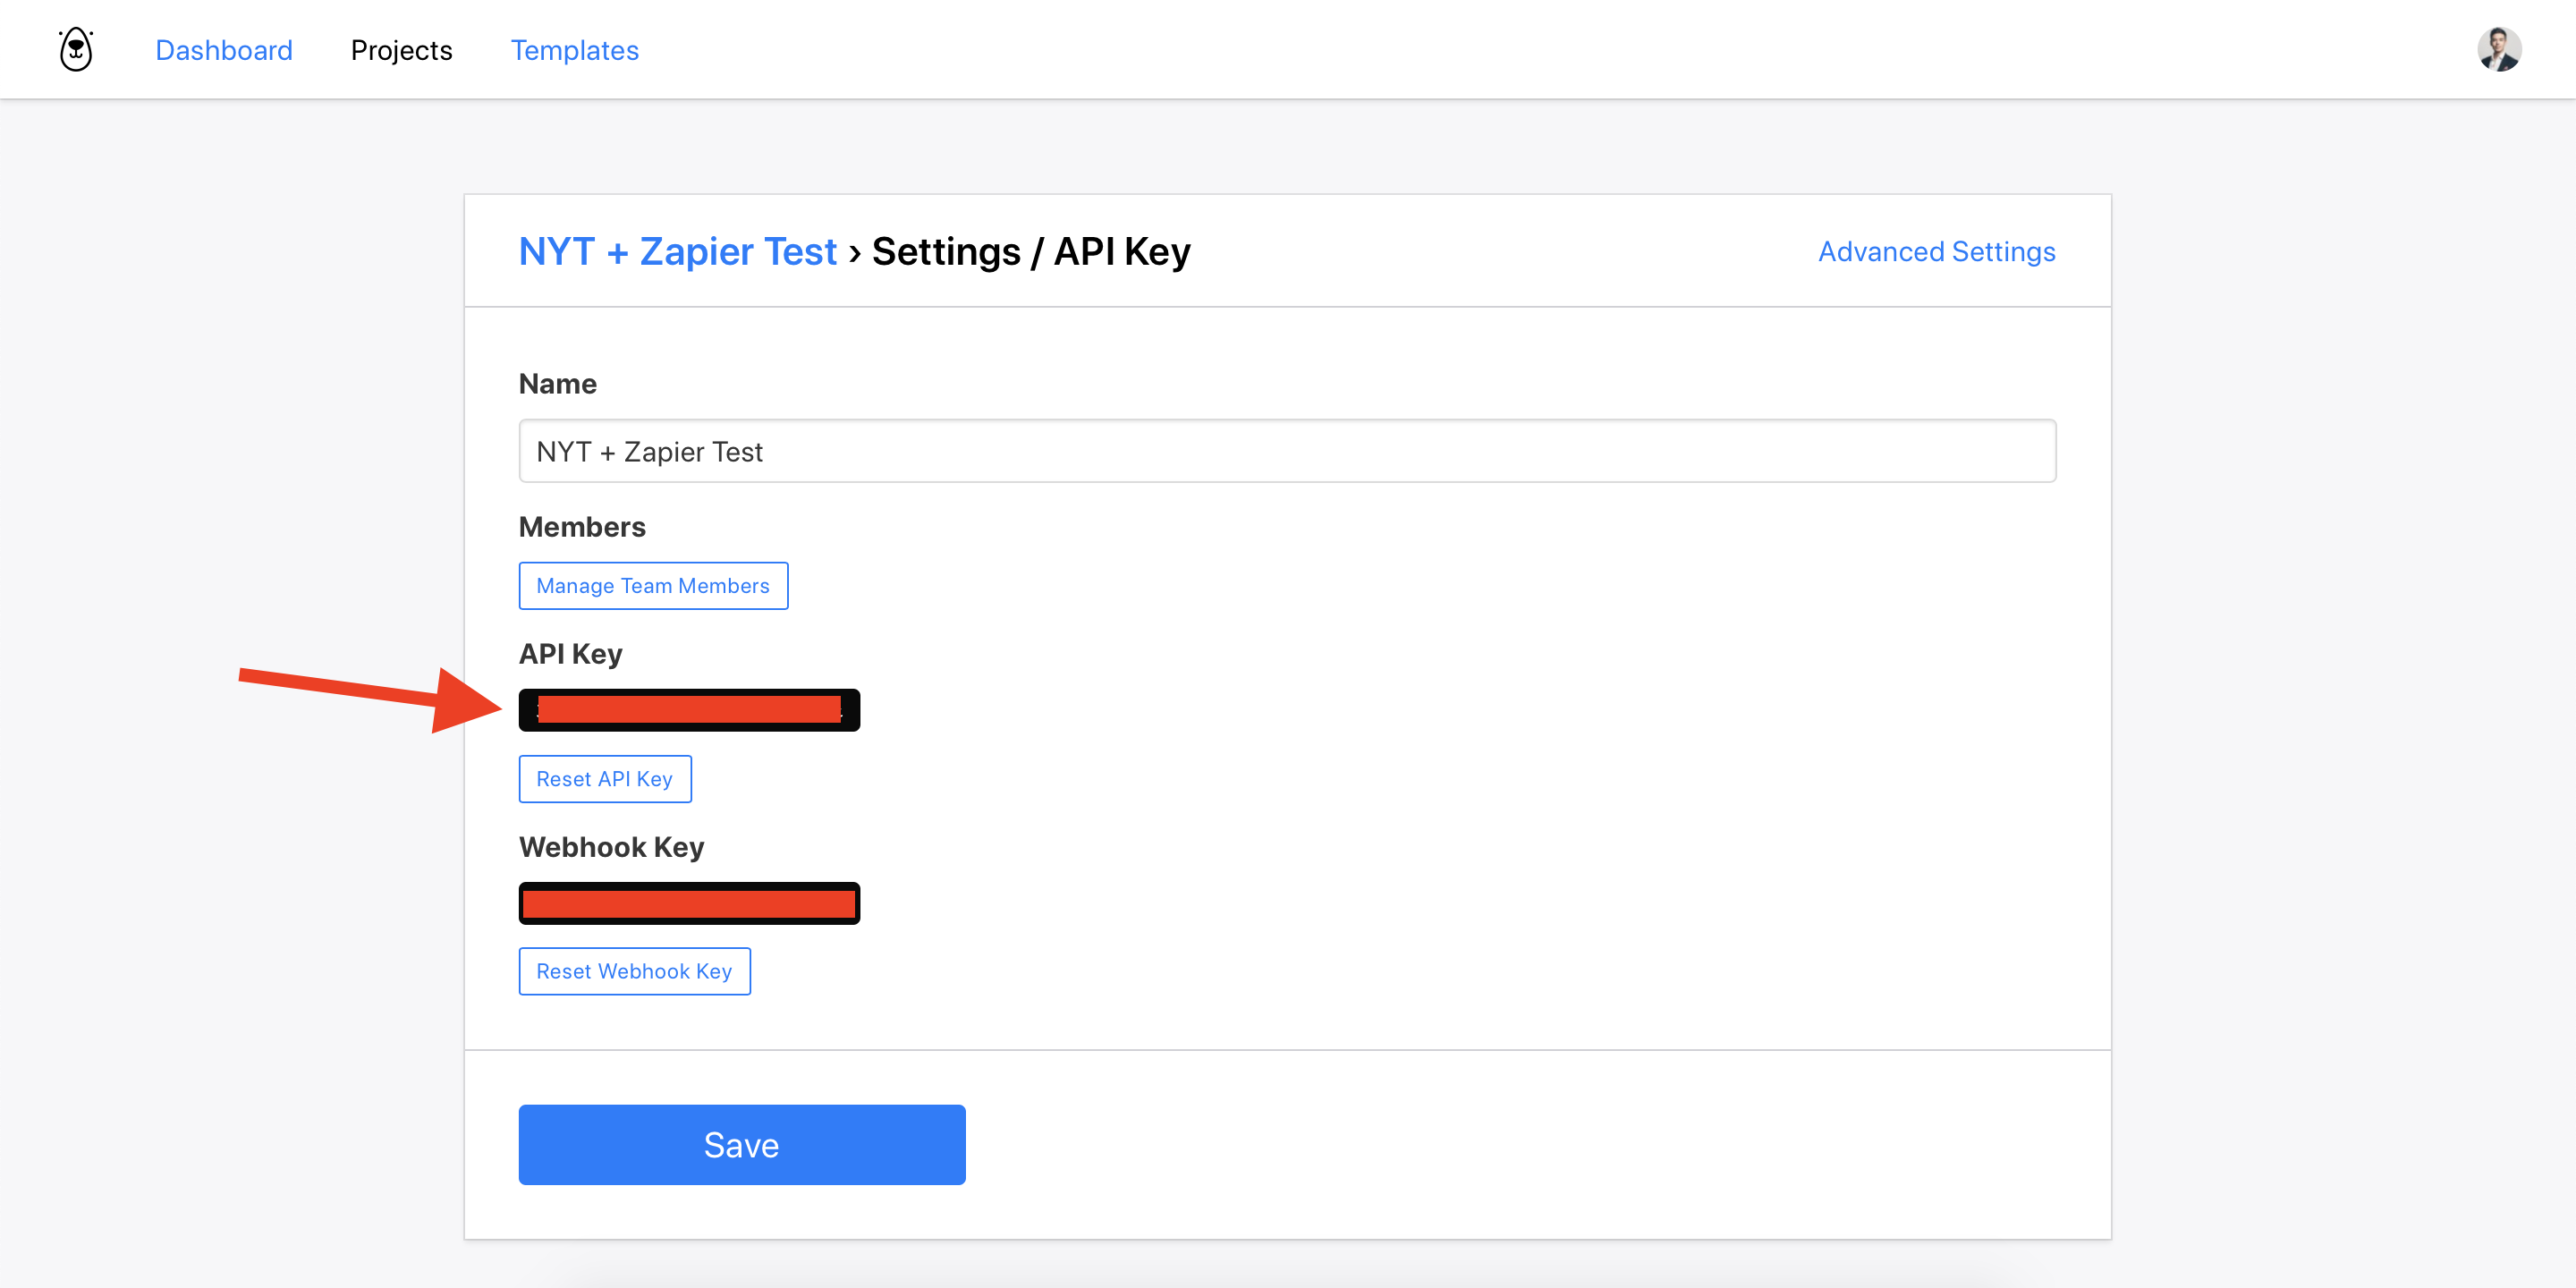 ></div></figure><p>Copy the API key to your clipboard to use later.</p><h2>Creating a new Zap in Zapier</h2><p><strong>Now lets switch to the Zapier interface.</strong></p><p>In your Zapier.com account, create a new Zap.</p><p>As the